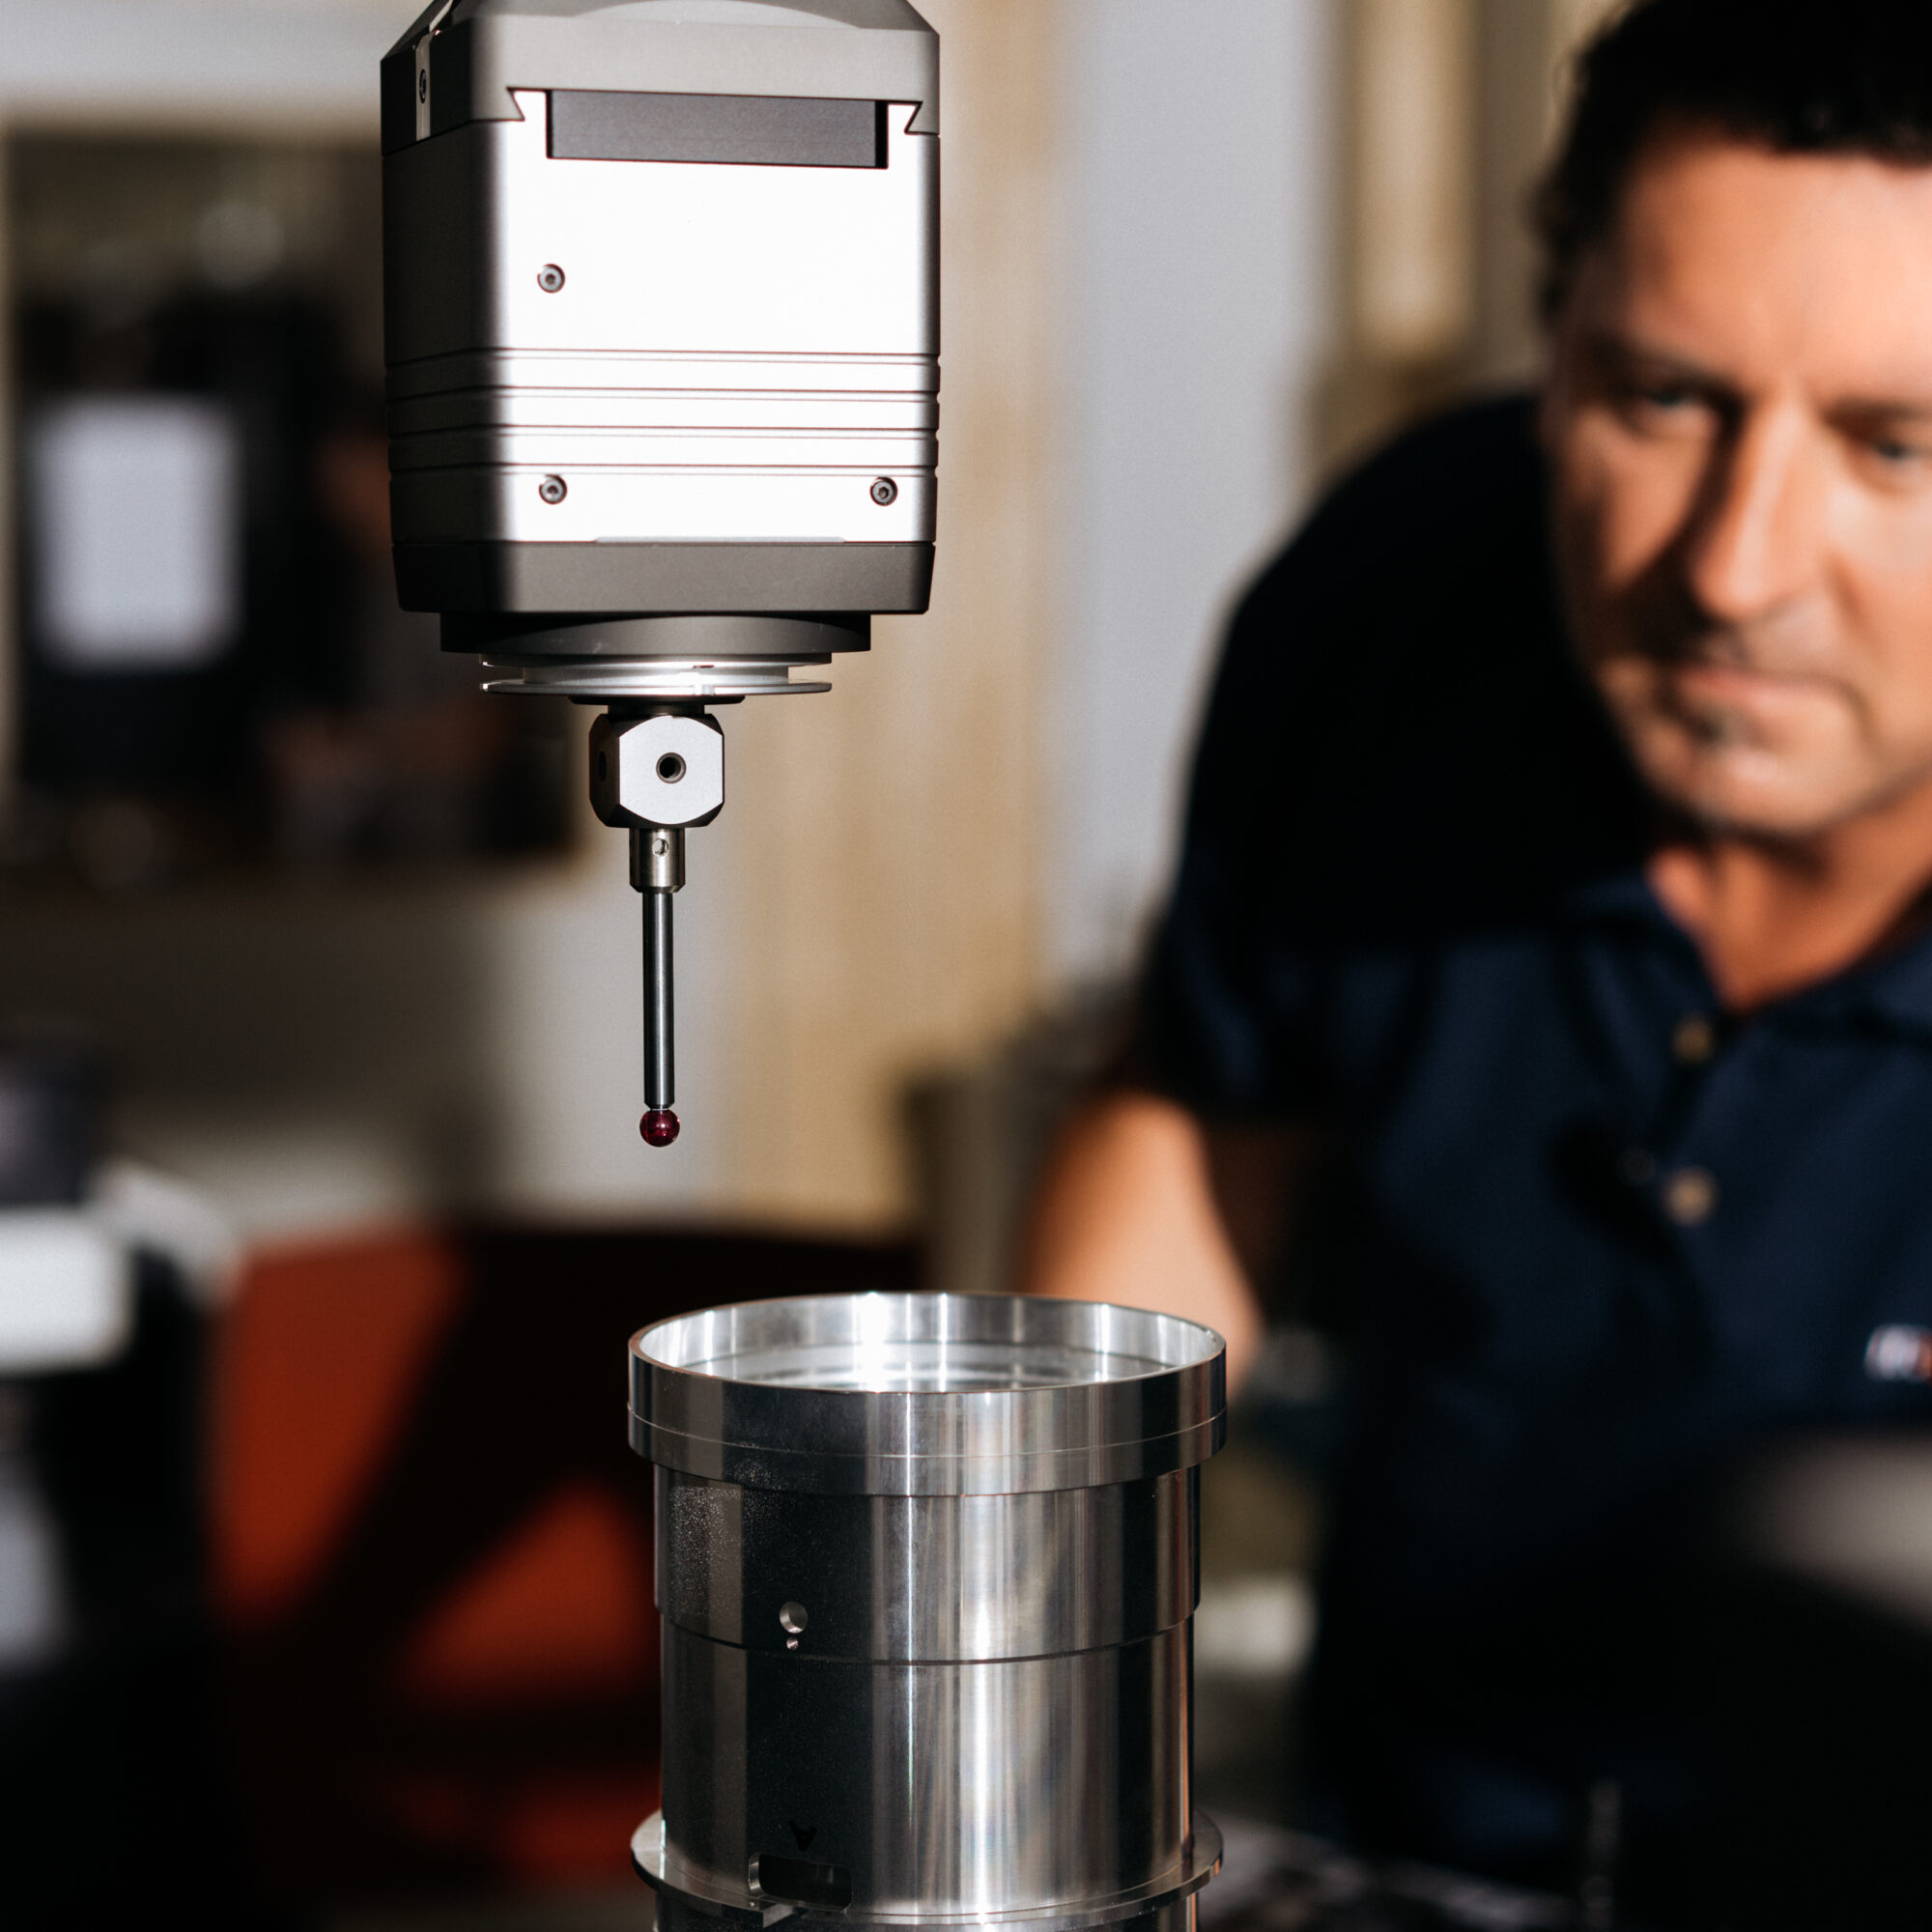 Zeiss' latest 3D metrology equipment in use to scrutinize measurements of a lens tubus